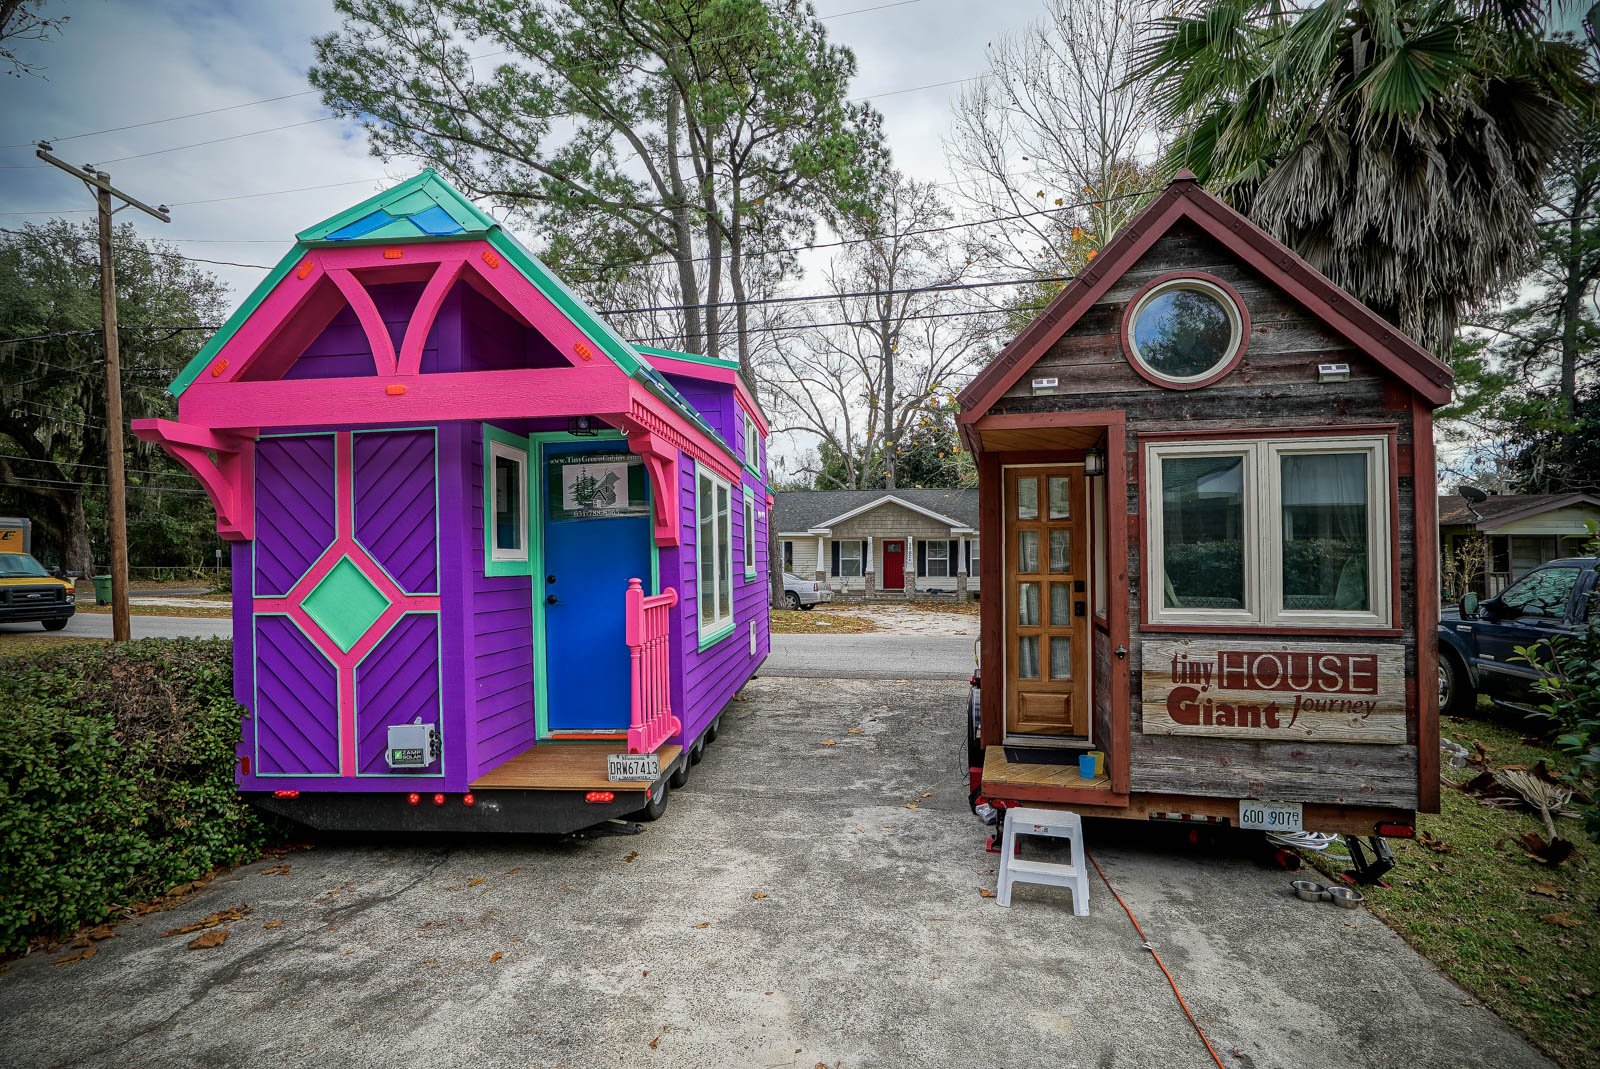 thgj and the ravenlore.jpg?resize=412,232 - Firefighter's Amazing Tiny House Captivates from the Inside Out